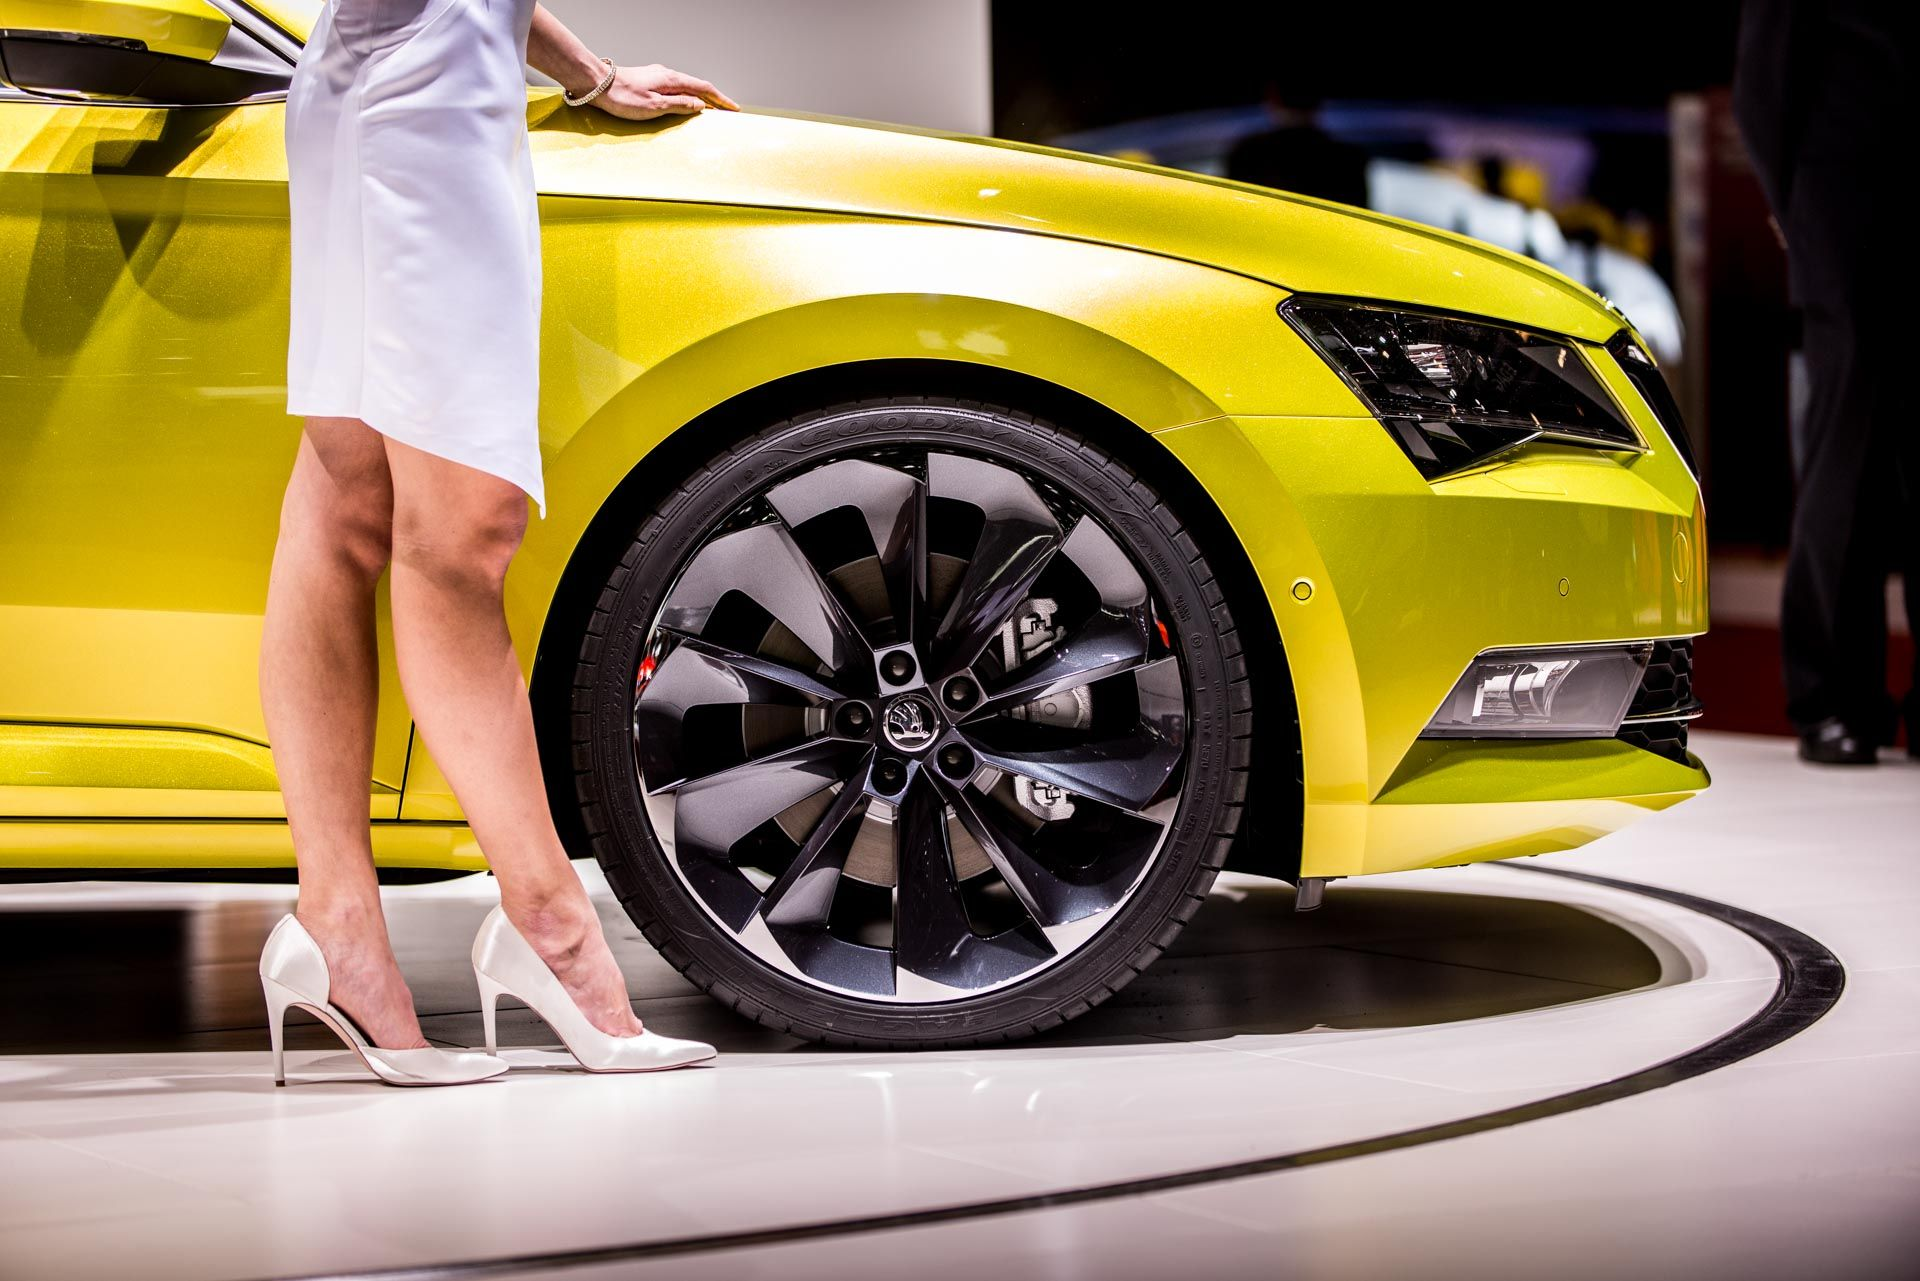 Glossy Alloy Wheels Make Your Car Look Classy And Chic - Show wheels on your car